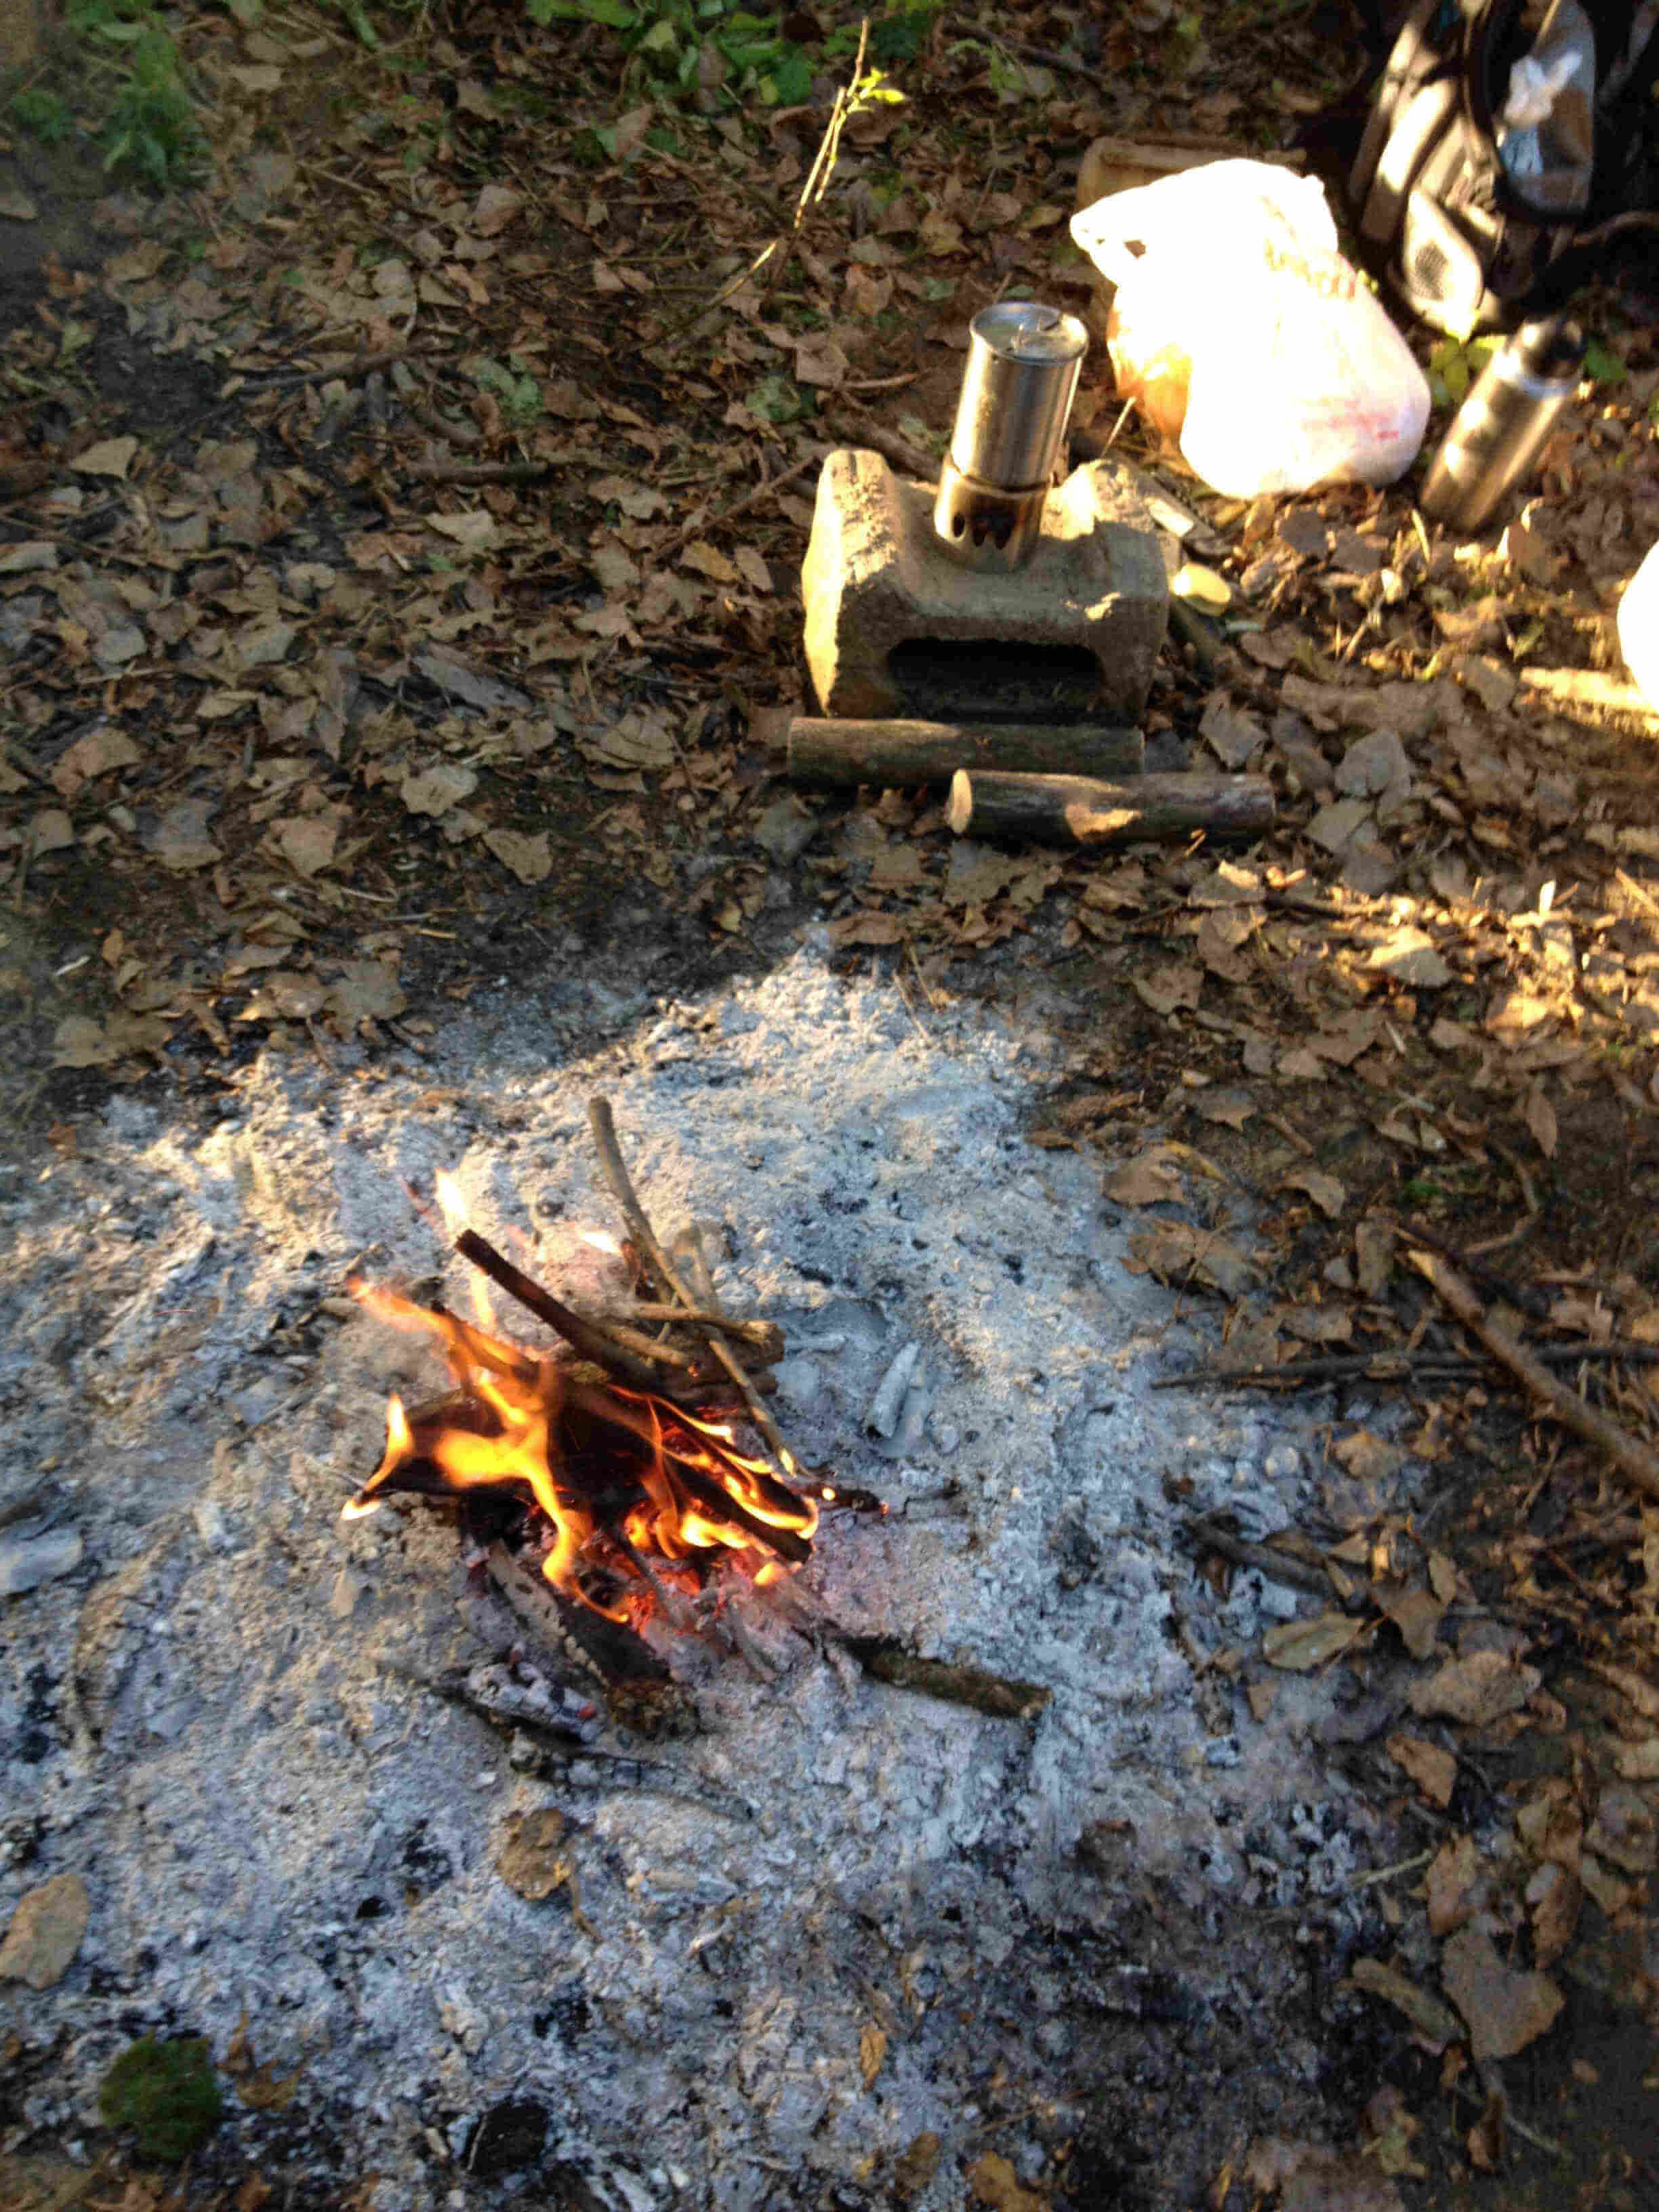 Downward view of a campfire, burning on the leaf covered ground